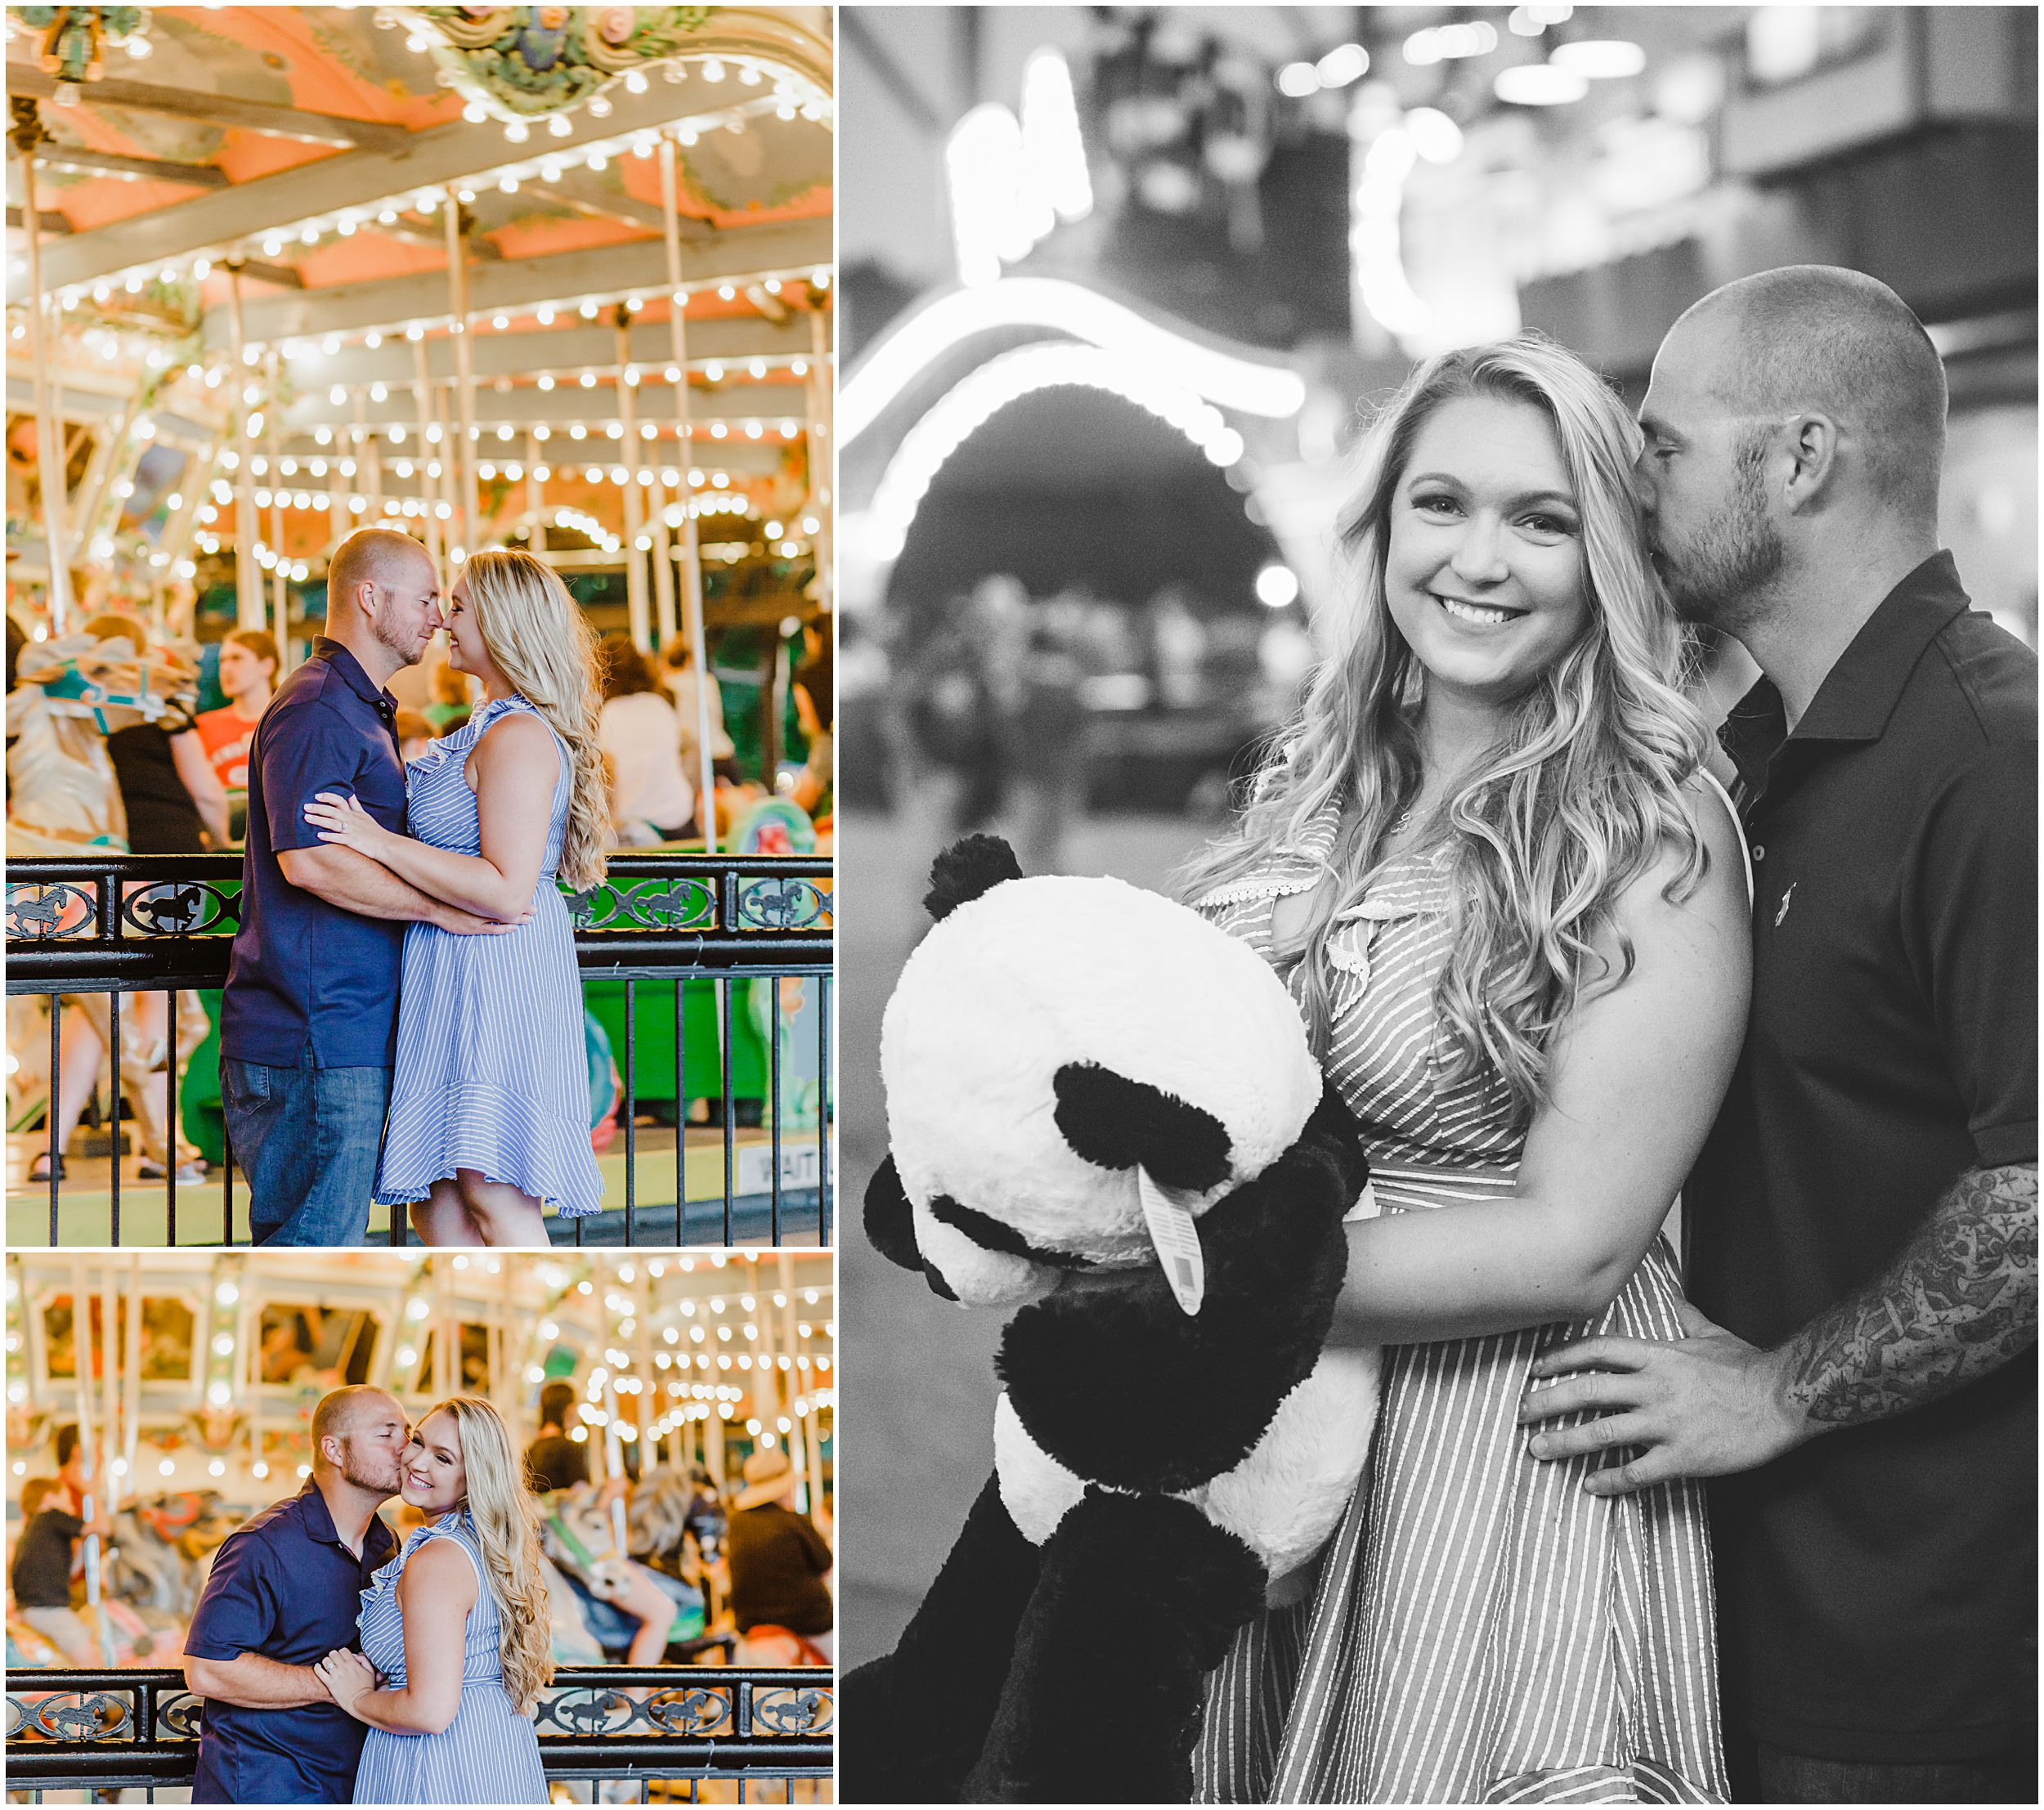 kennywood_engagement_session_0013.jpg